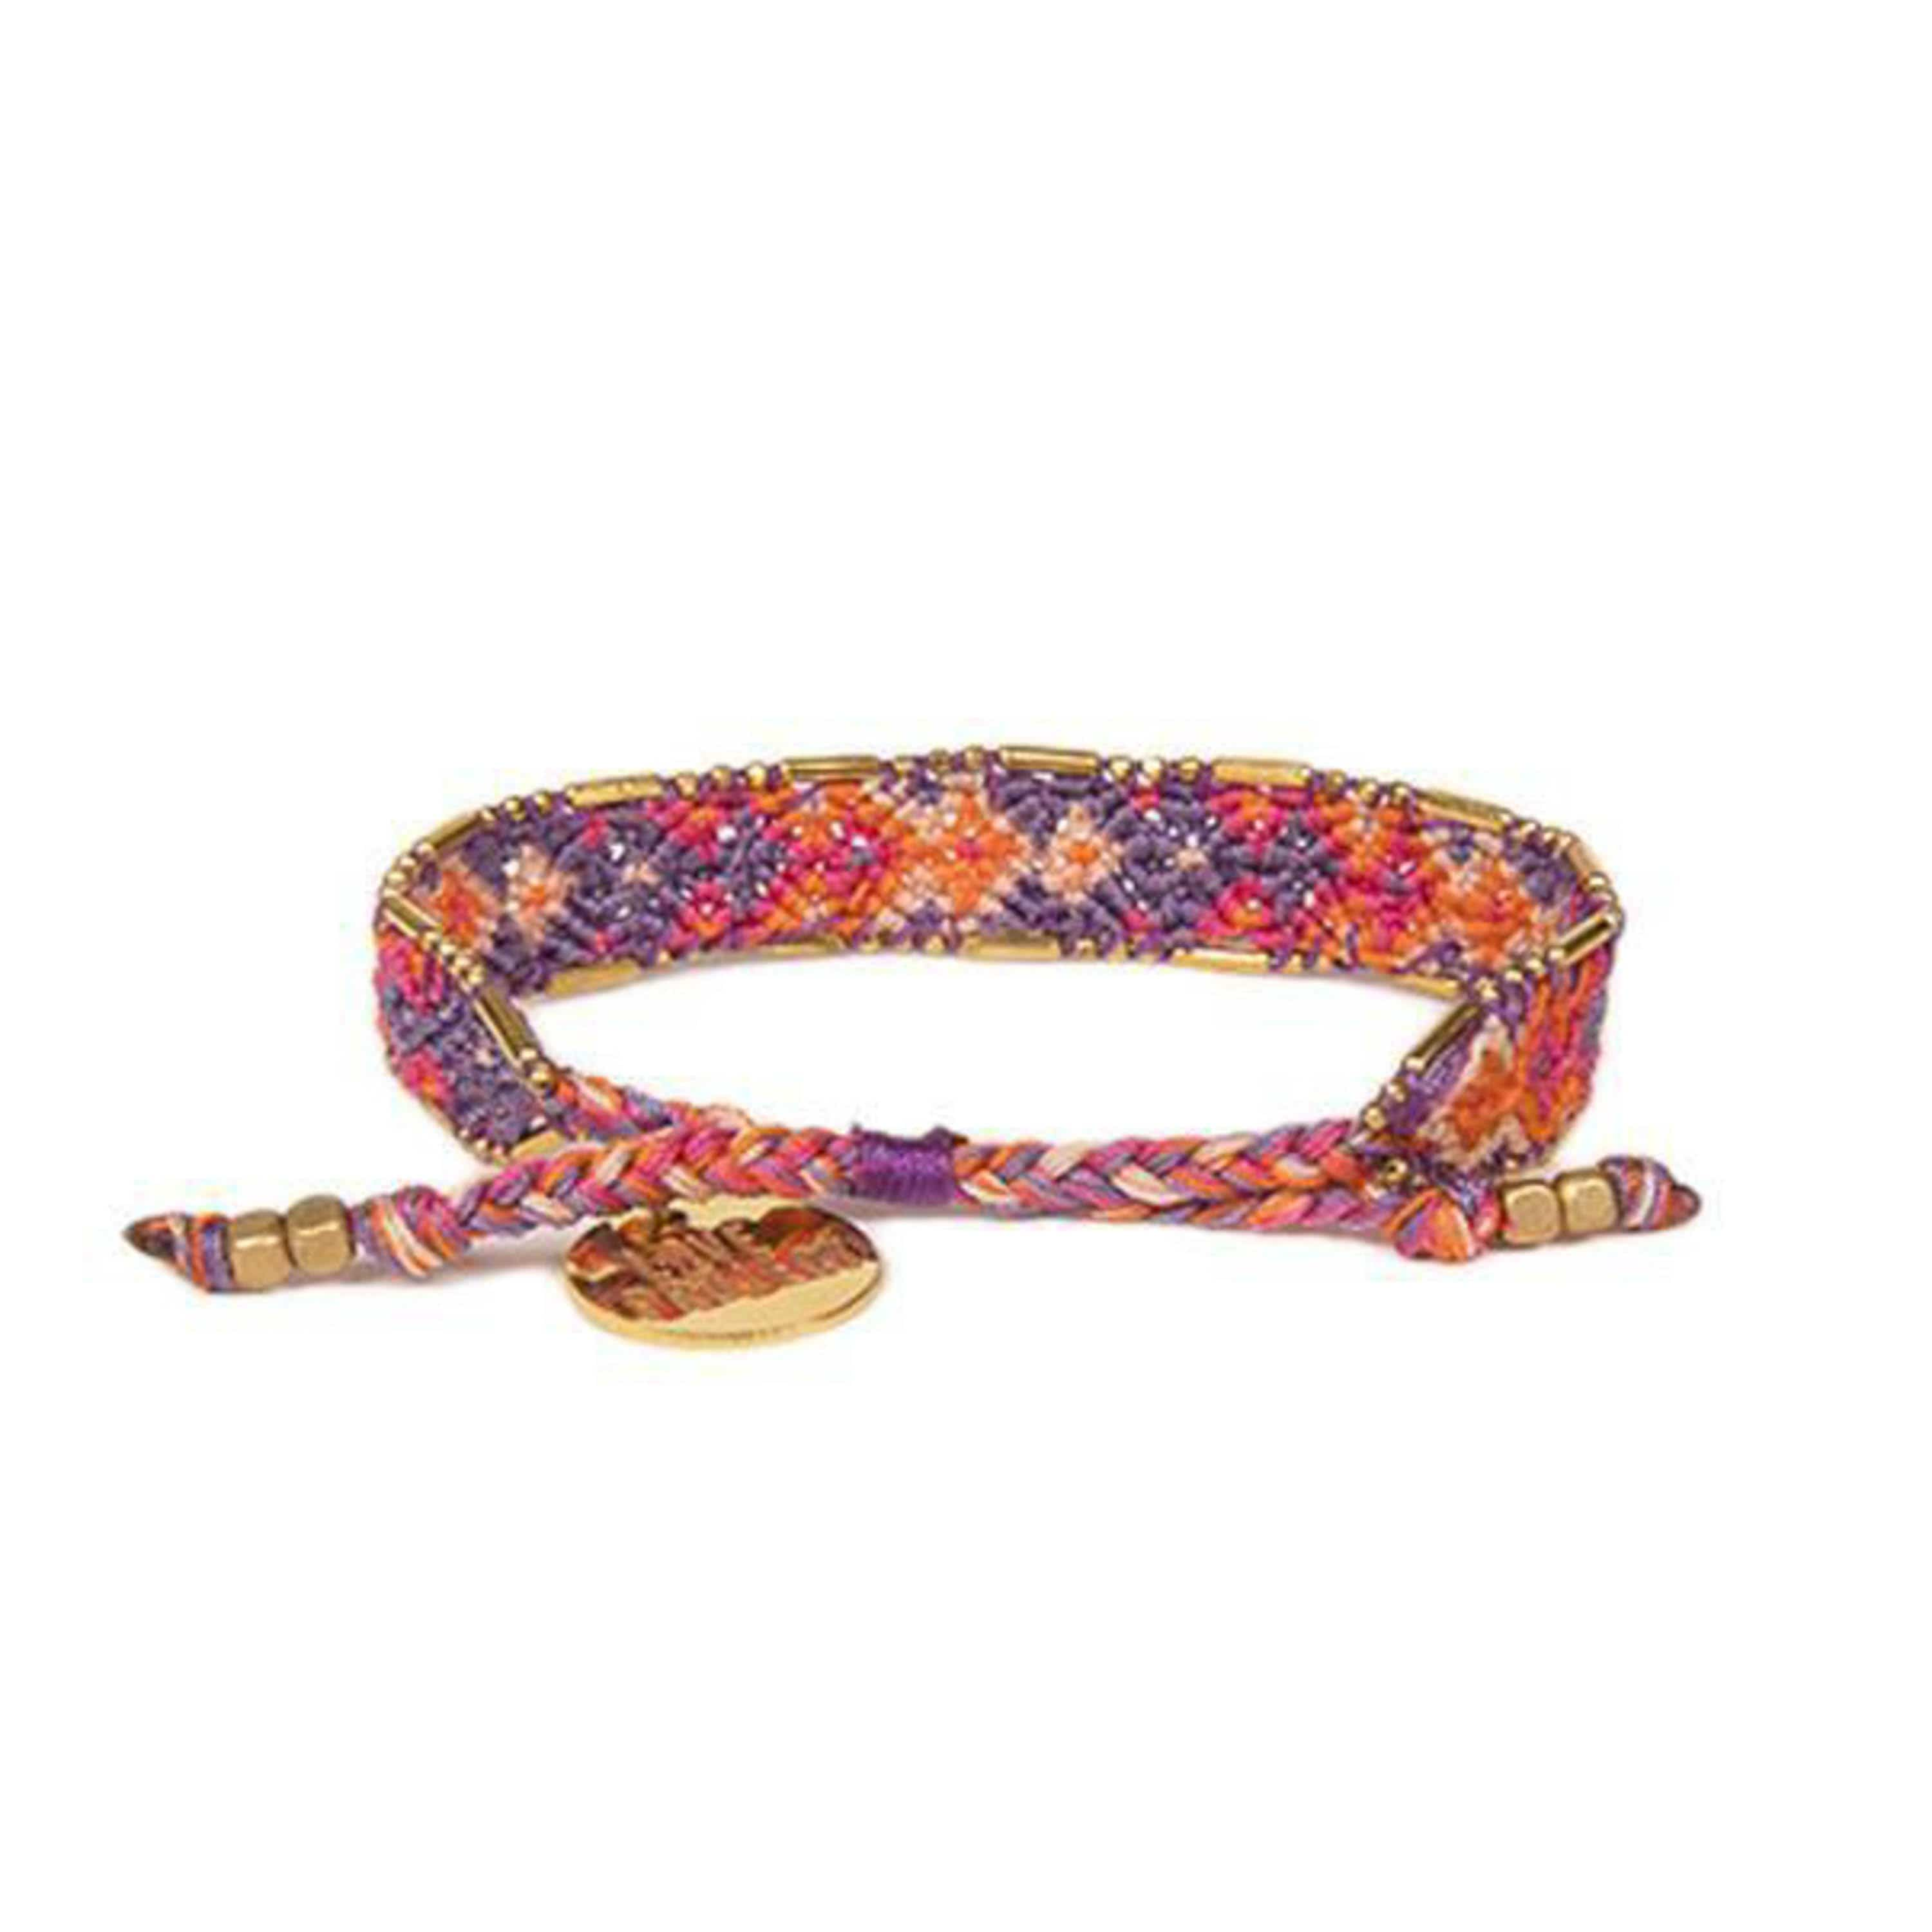 Bali Friendship Bracelet - Sunset Ubud - Love Is Project